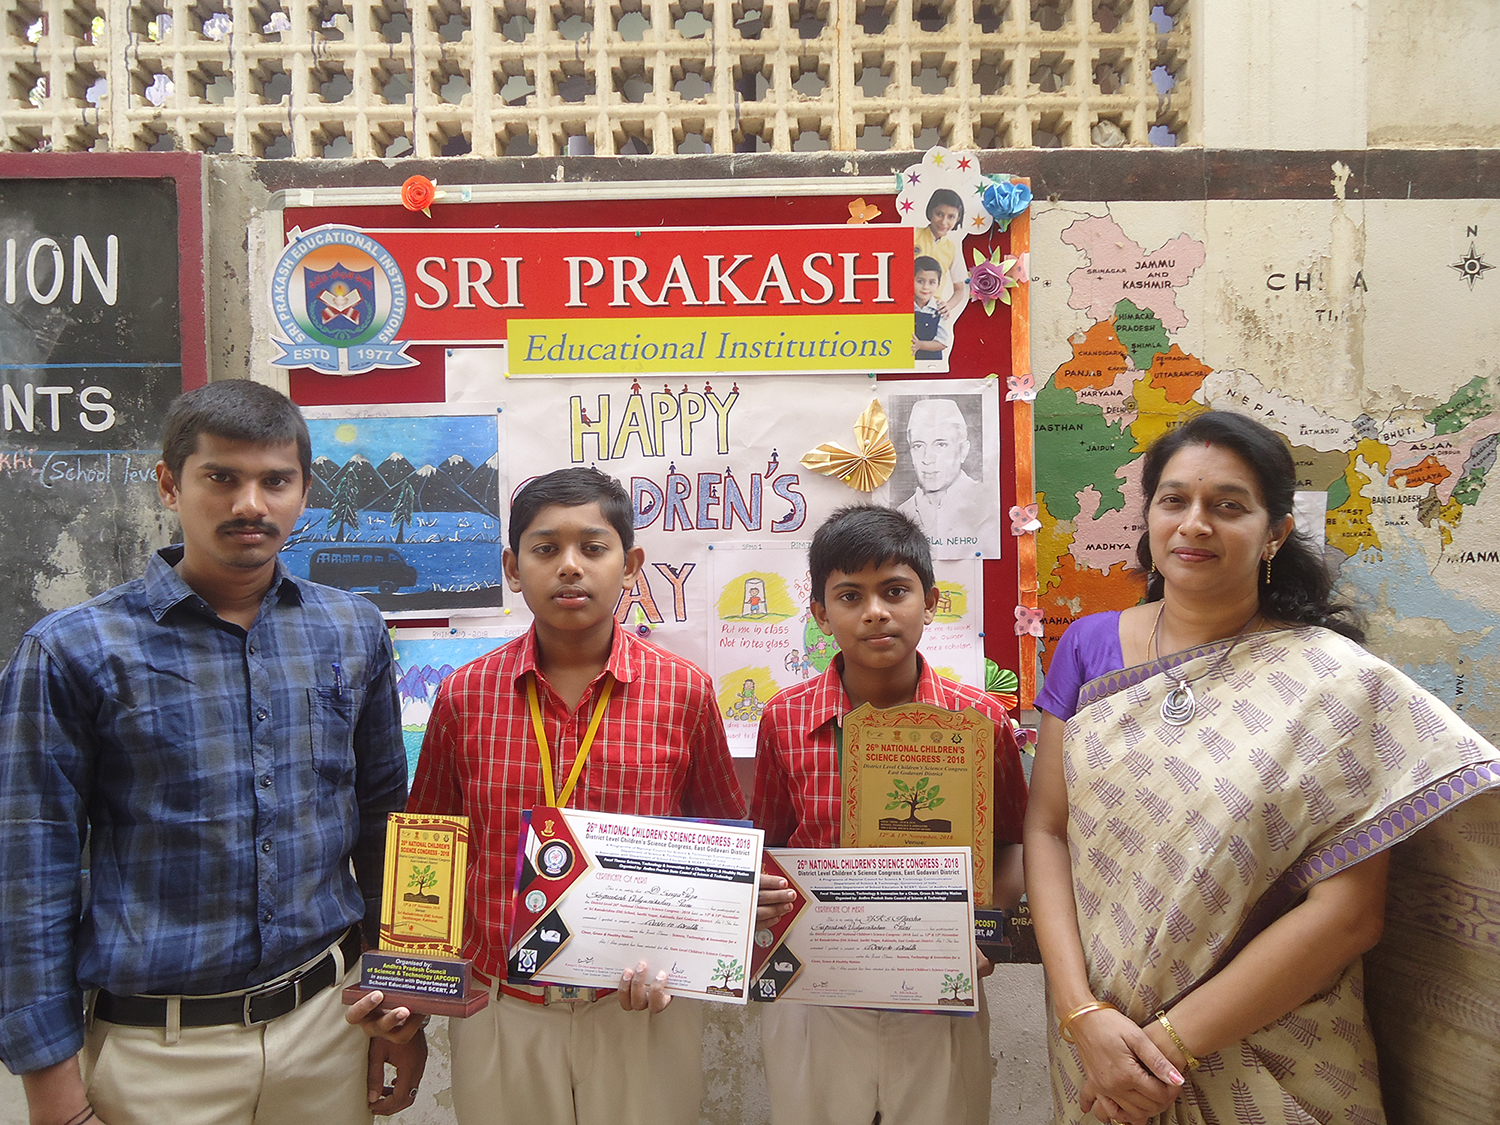 Selected for State Level Presentation